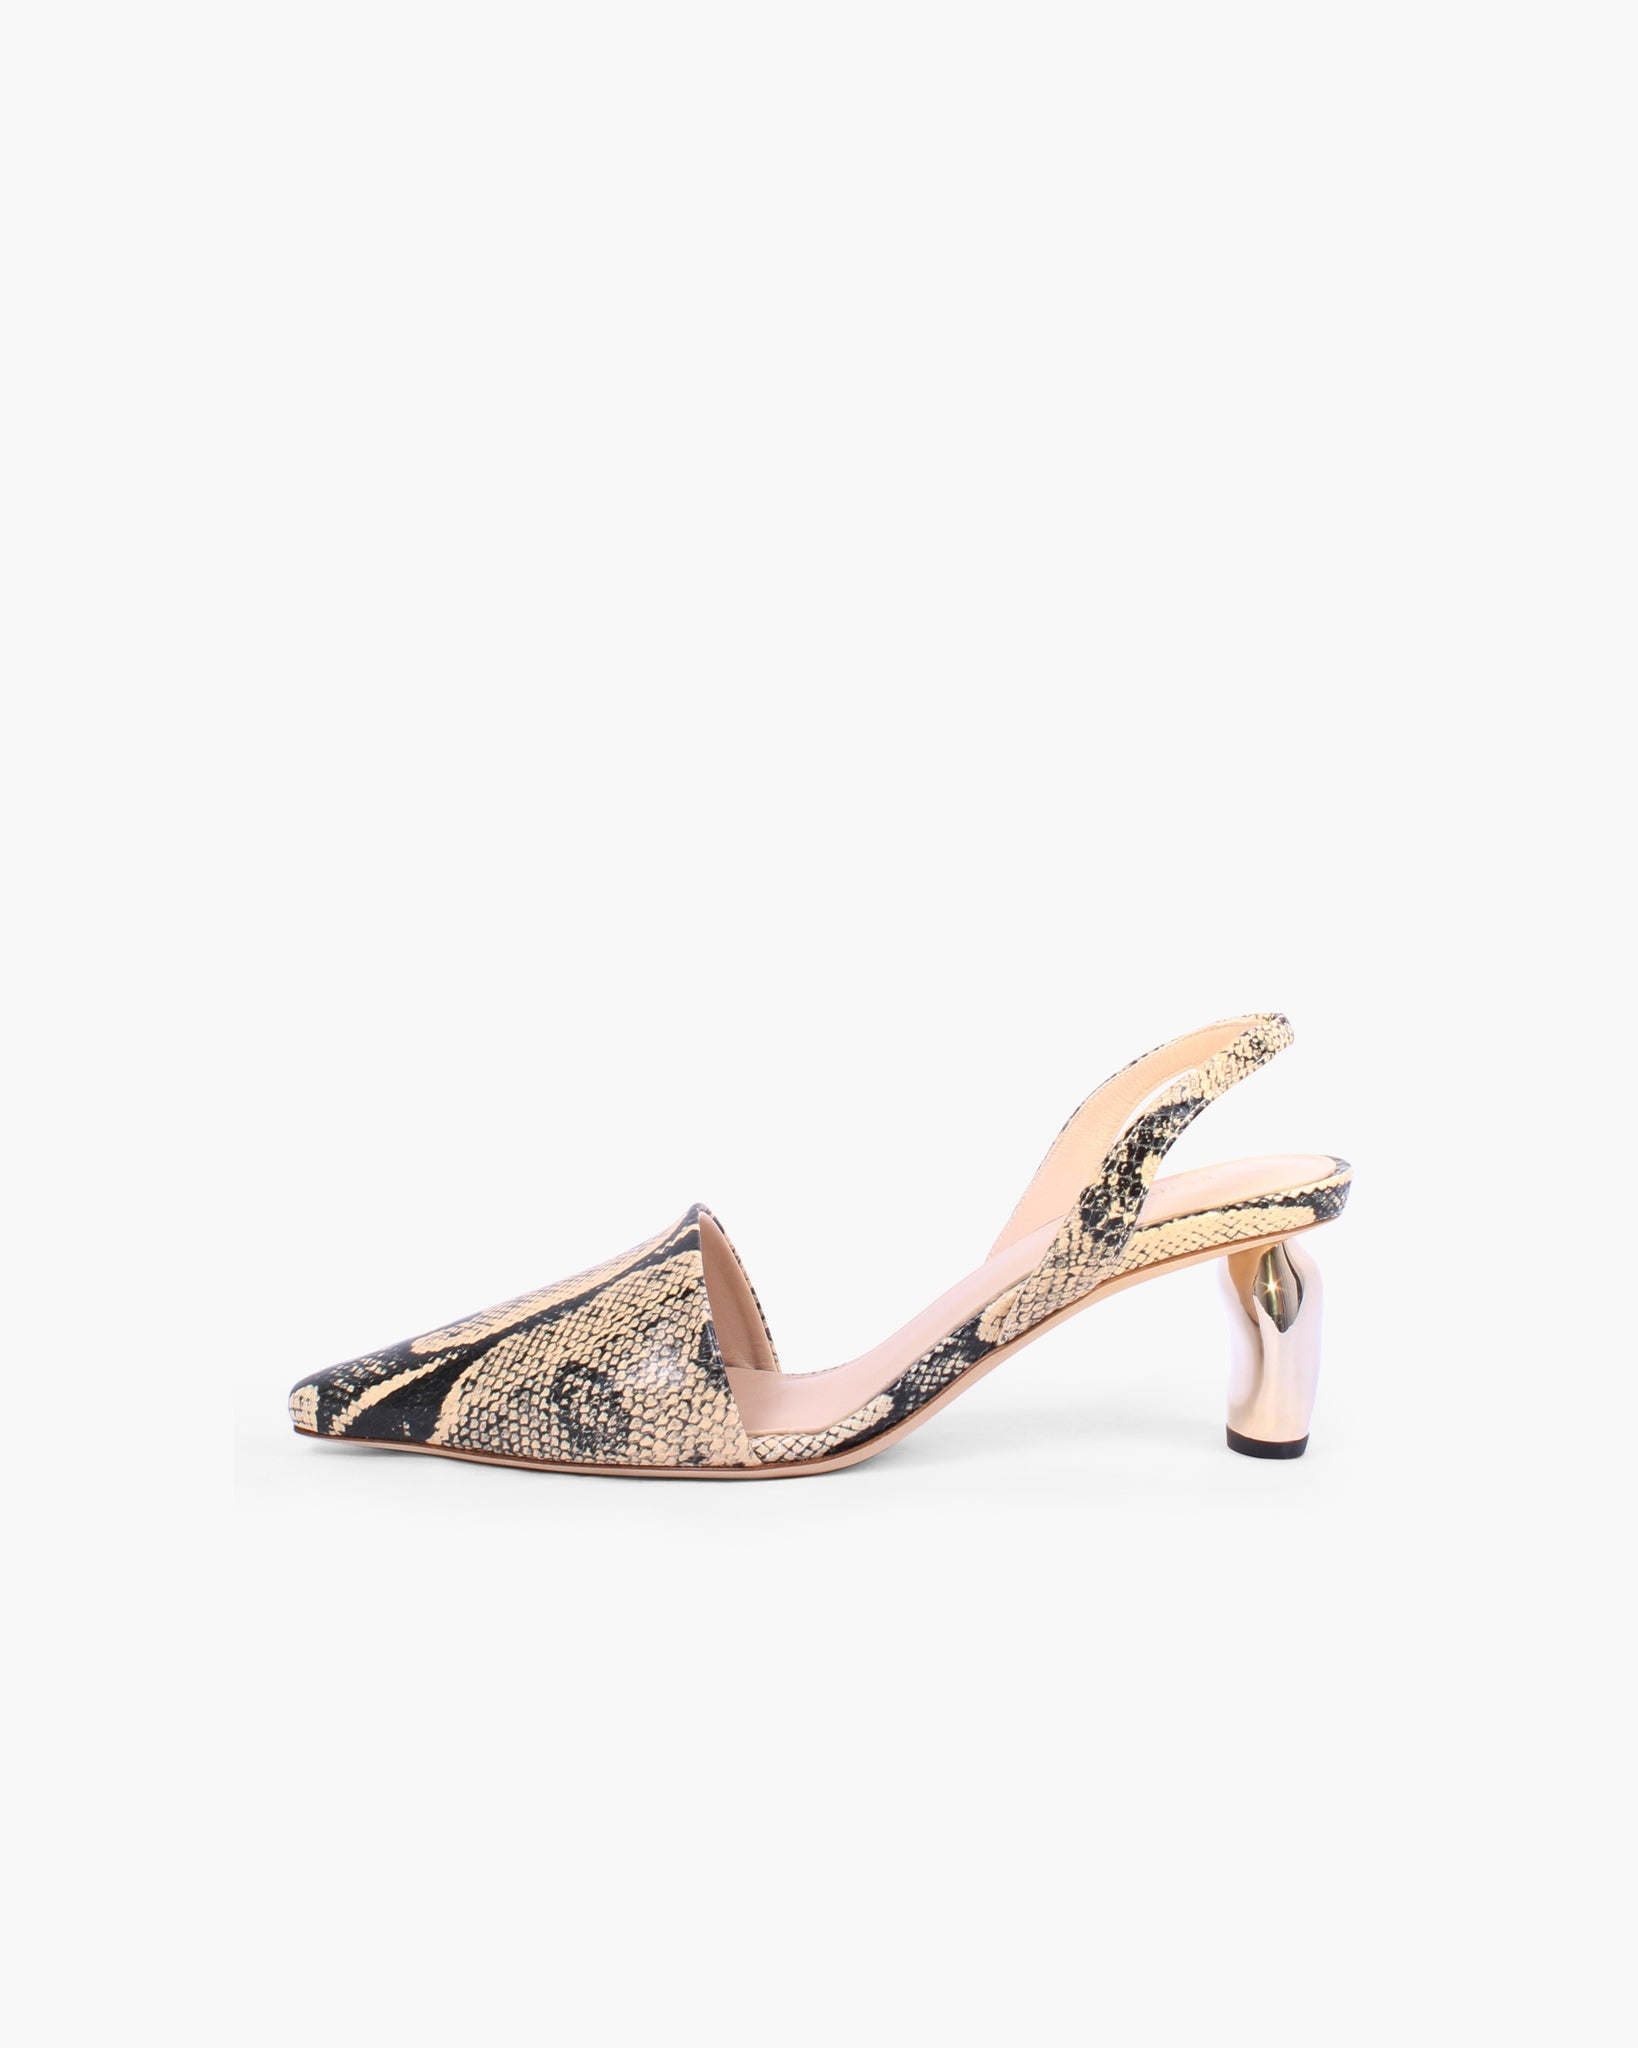 Conie Slingbacks Leather Print Boa Beige - SPECIAL PRICE